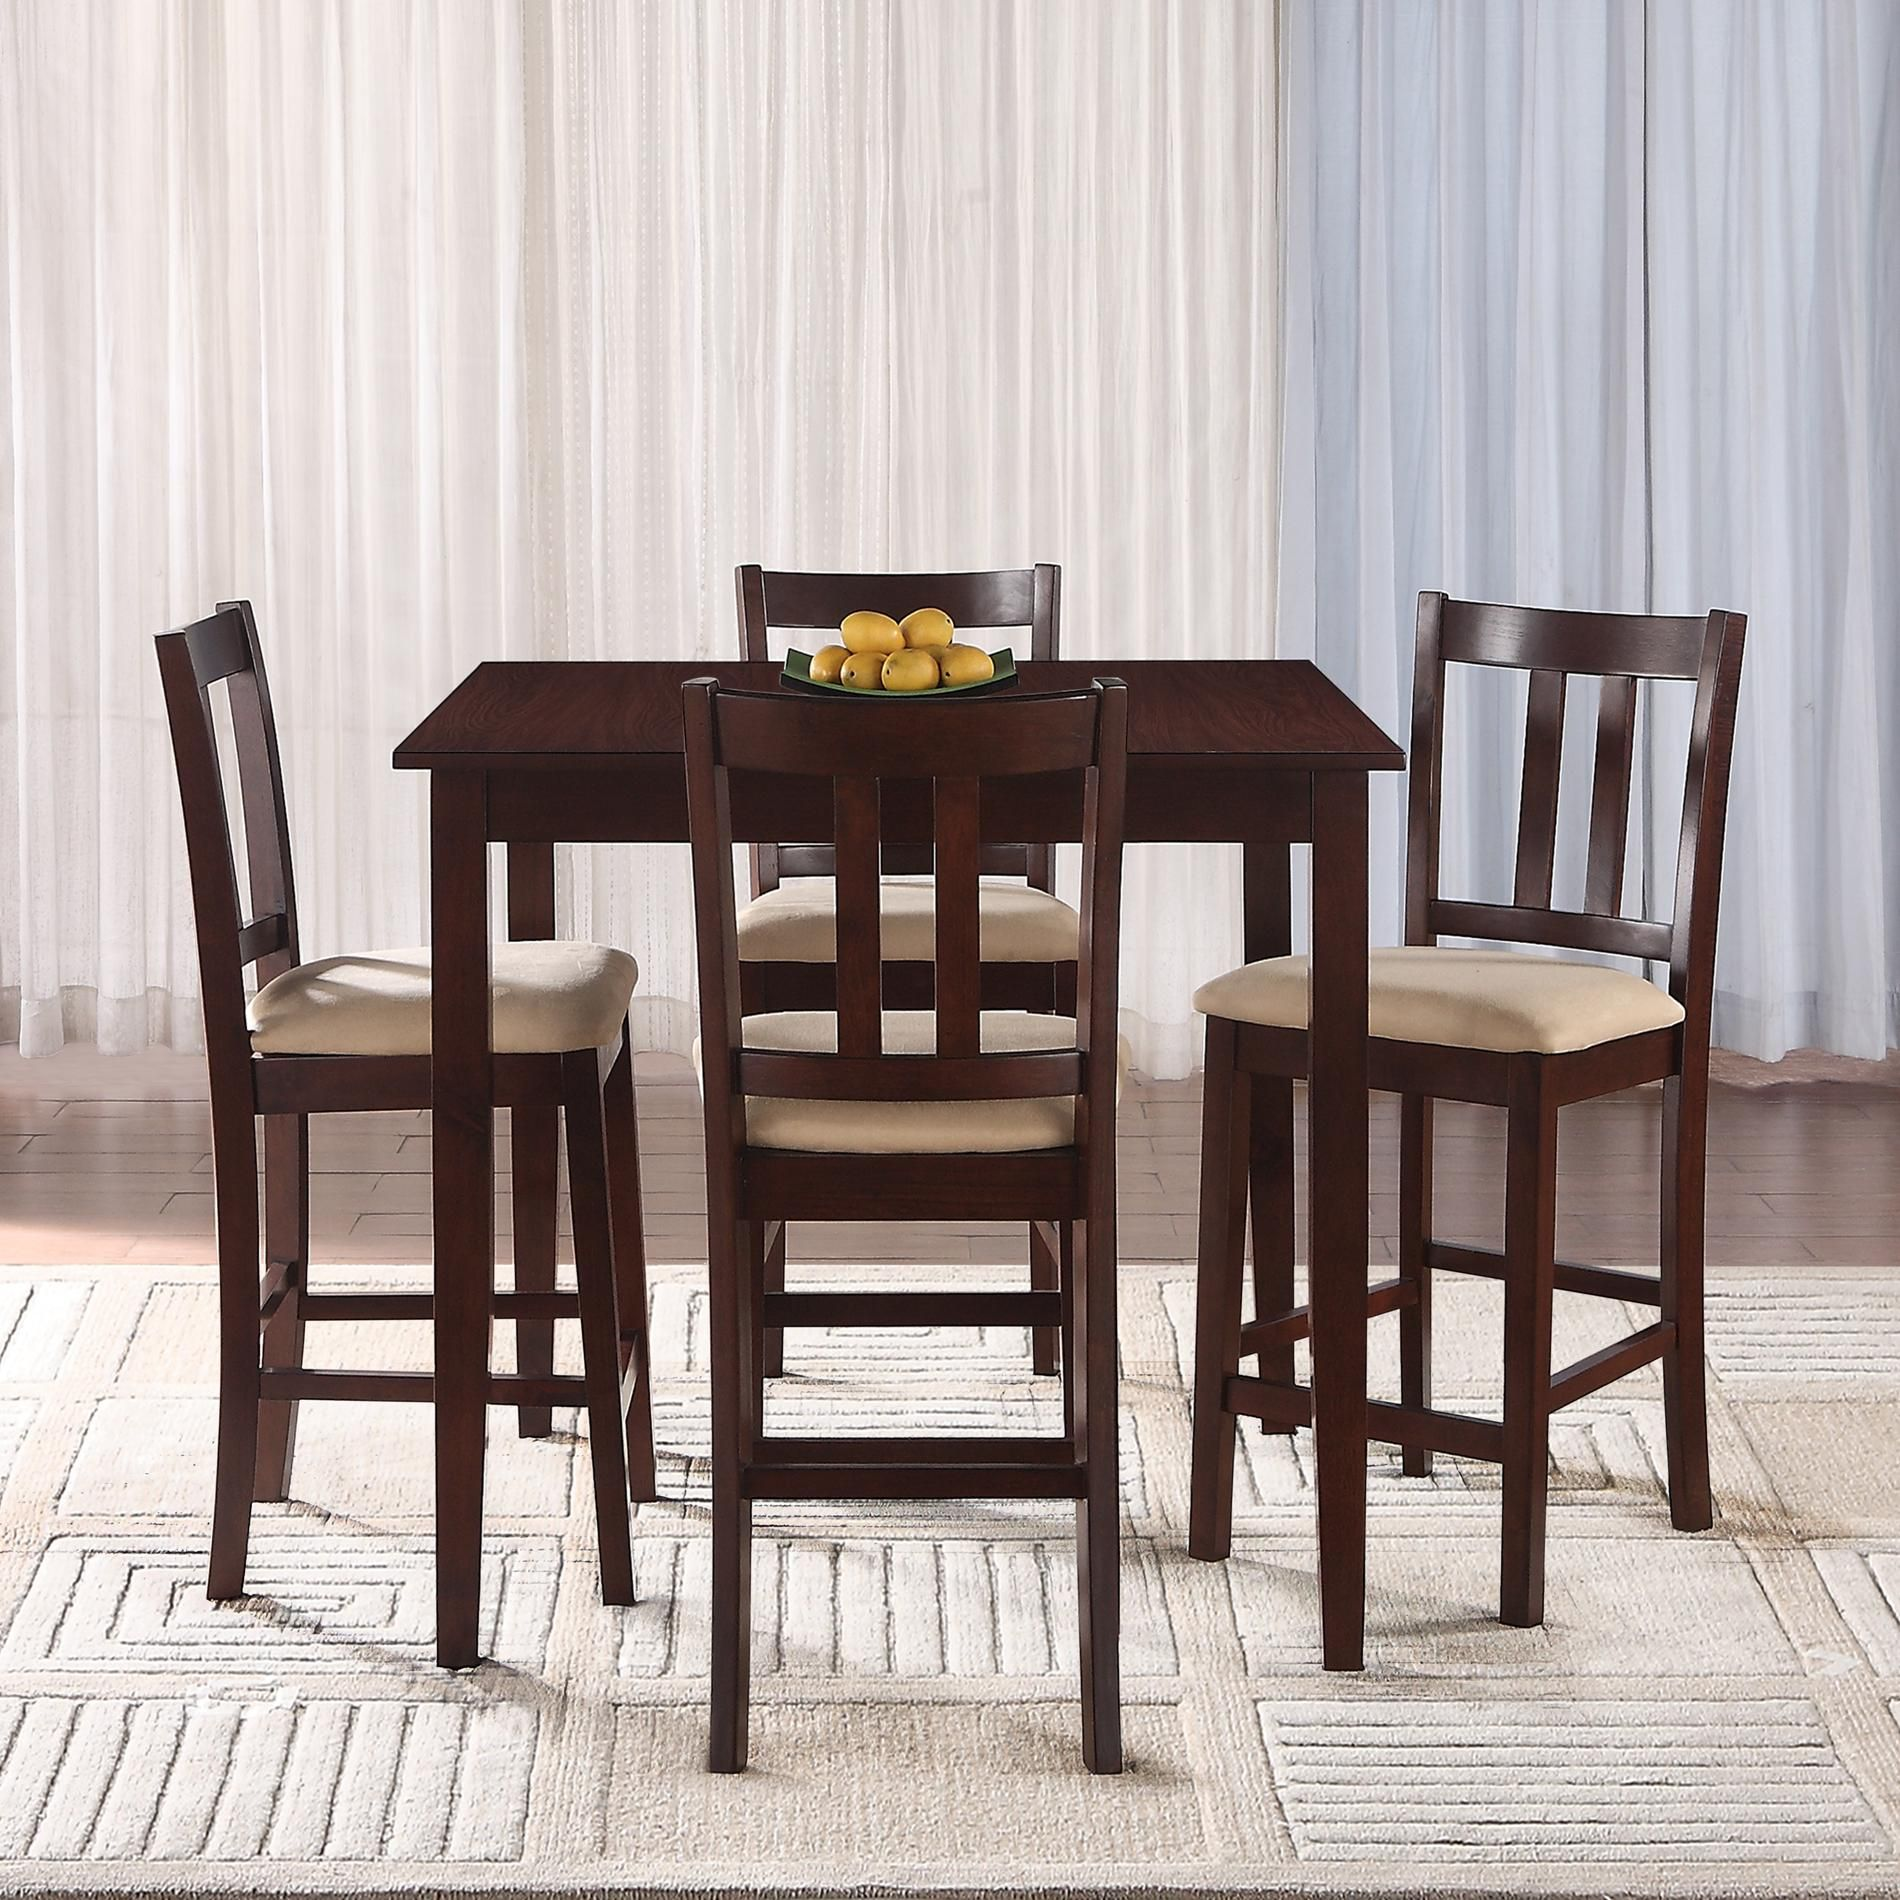 Essential Home Hayden 5 Piece Upholstered Dining Set With Rich Espresso Finish